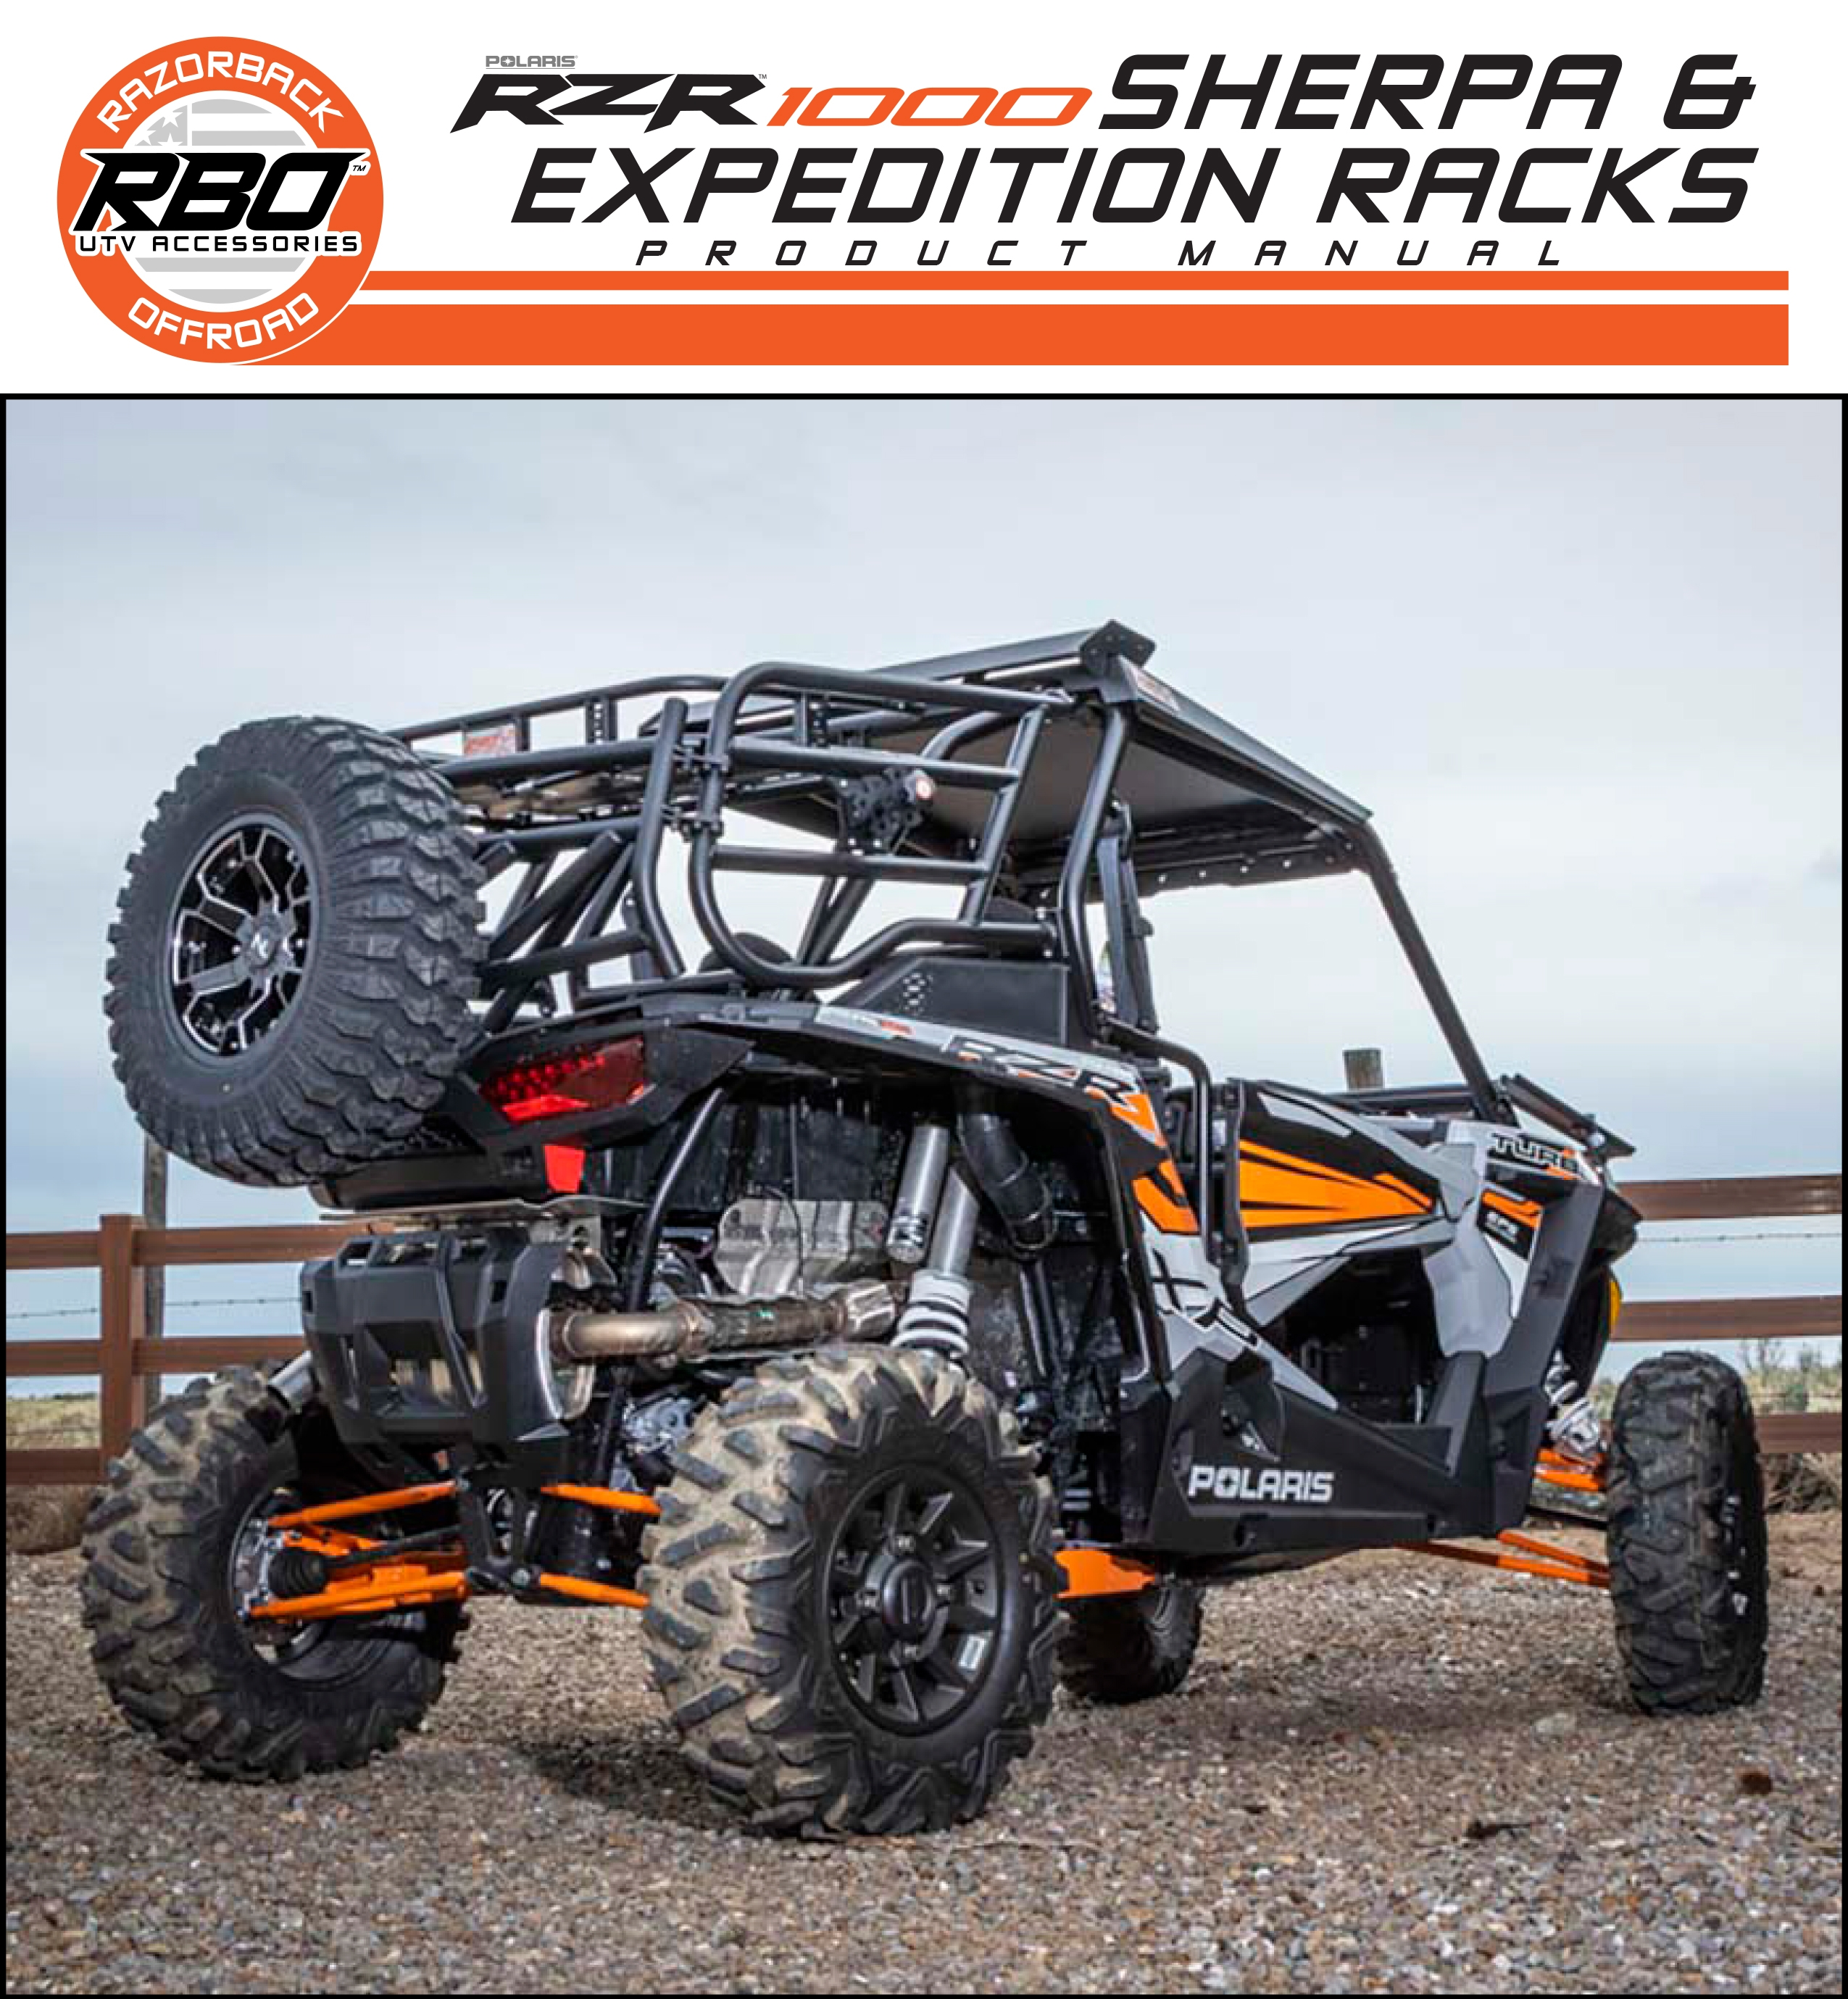 RBO Polaris RZR 1000 Sherpa and Expedition Racks Product Manuals